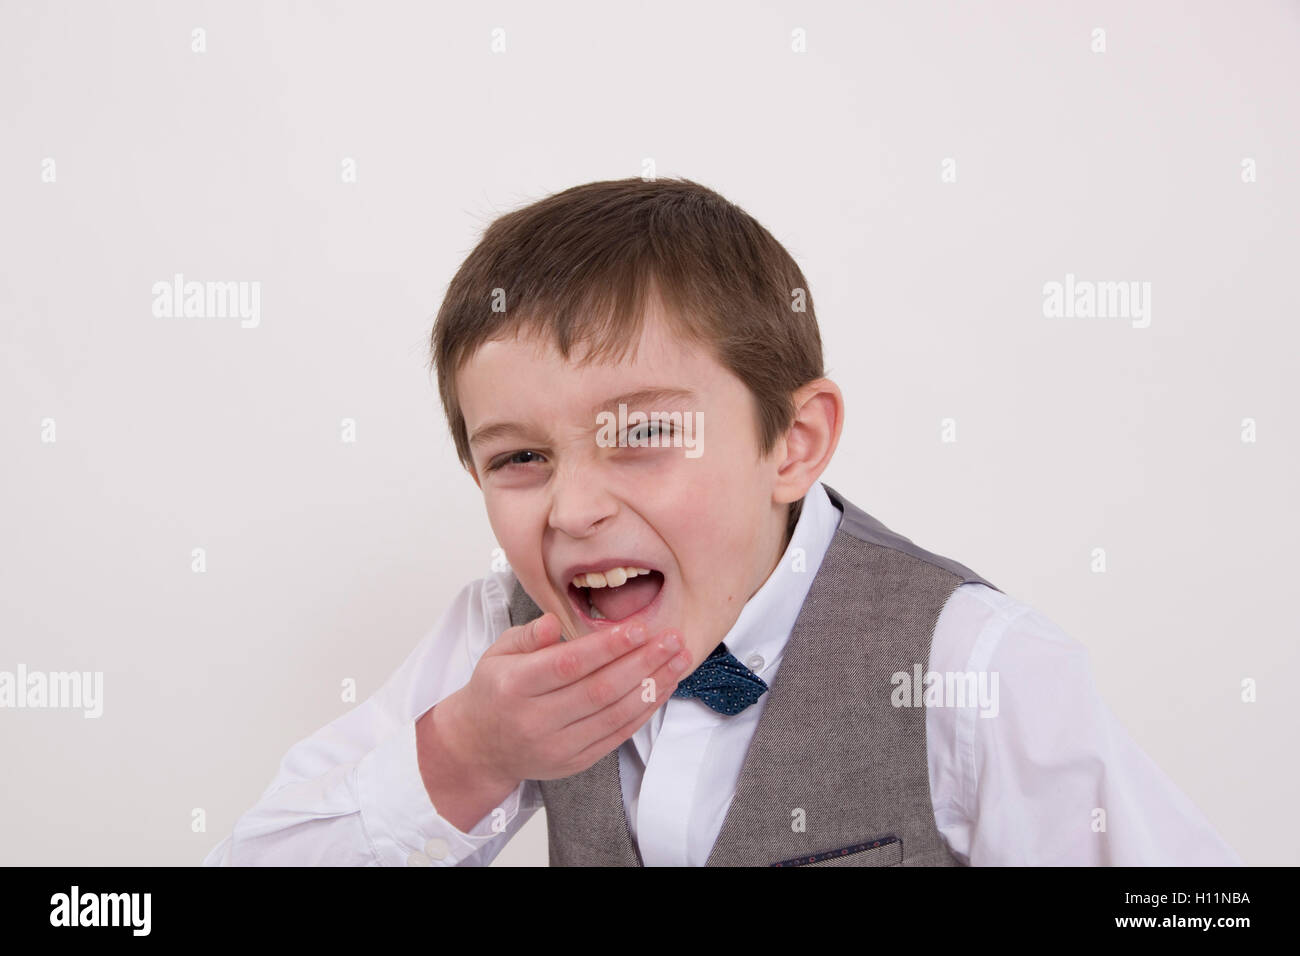 Portrait of a laughing young man : 8 year old boy wearing formal bow tie and waistcoat - Stock Image